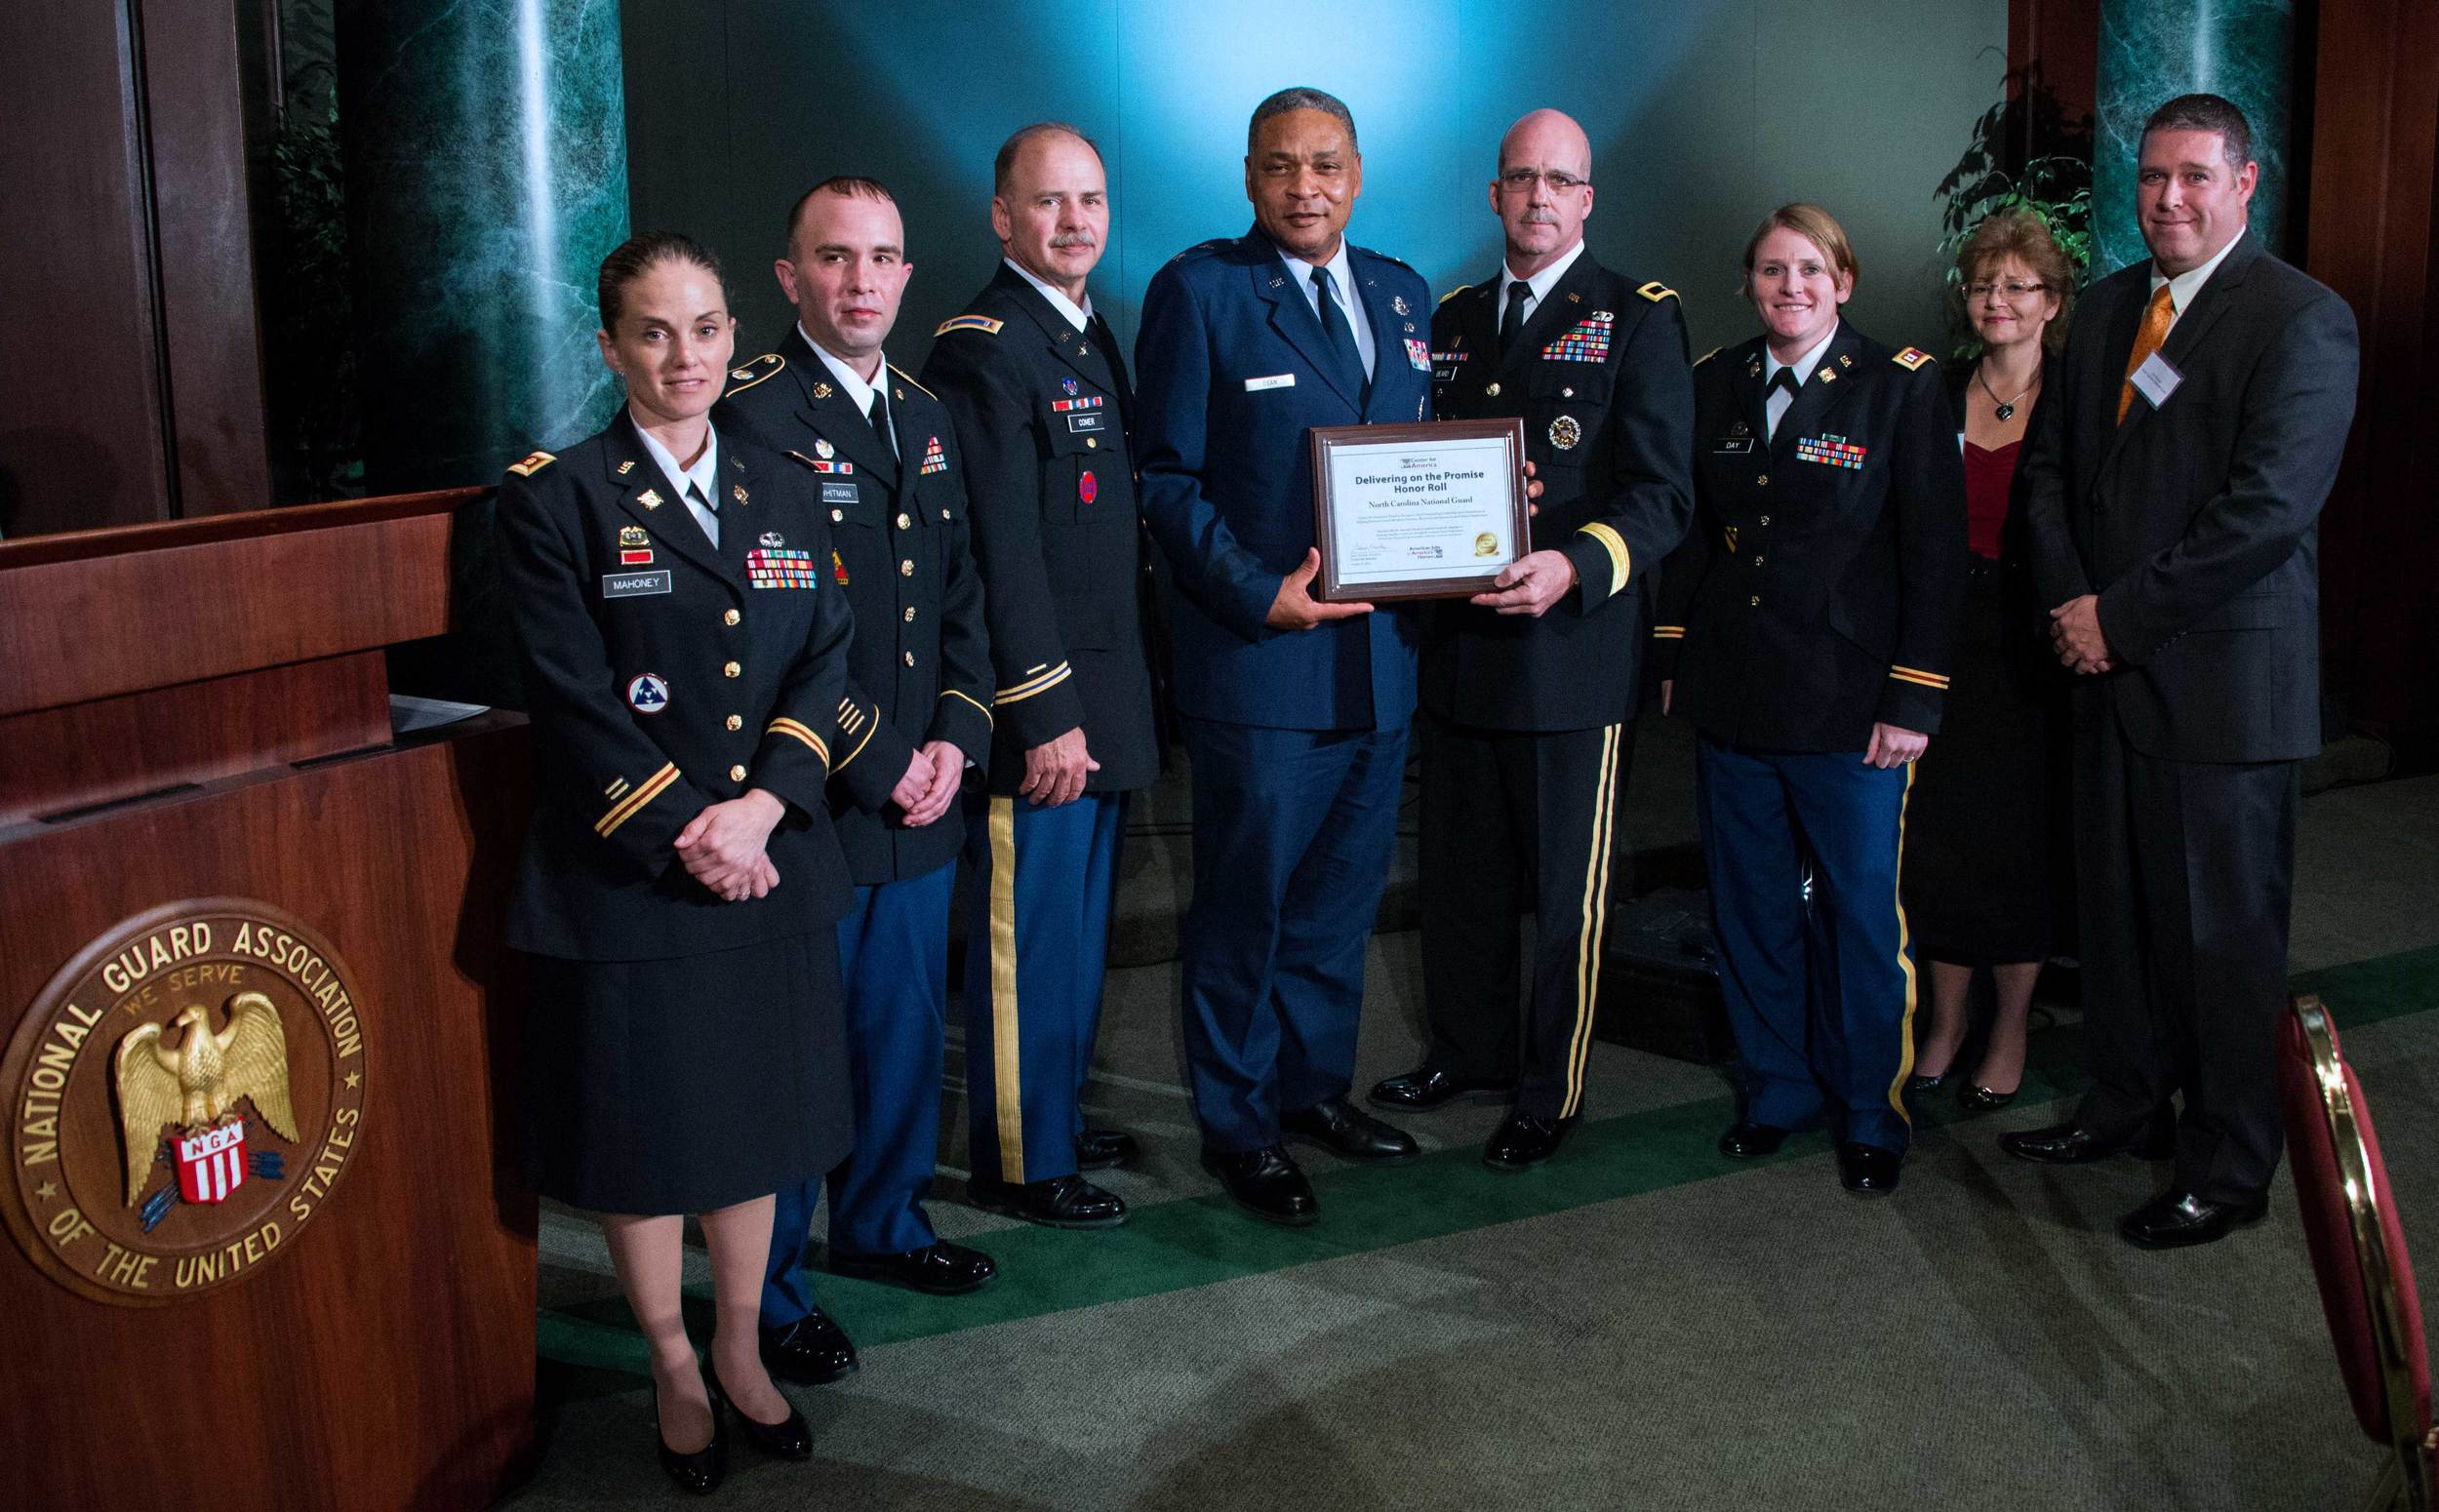 Major General Garry Dean presents the CFA Award to the Employment and Education Team, North Carolina National Guard